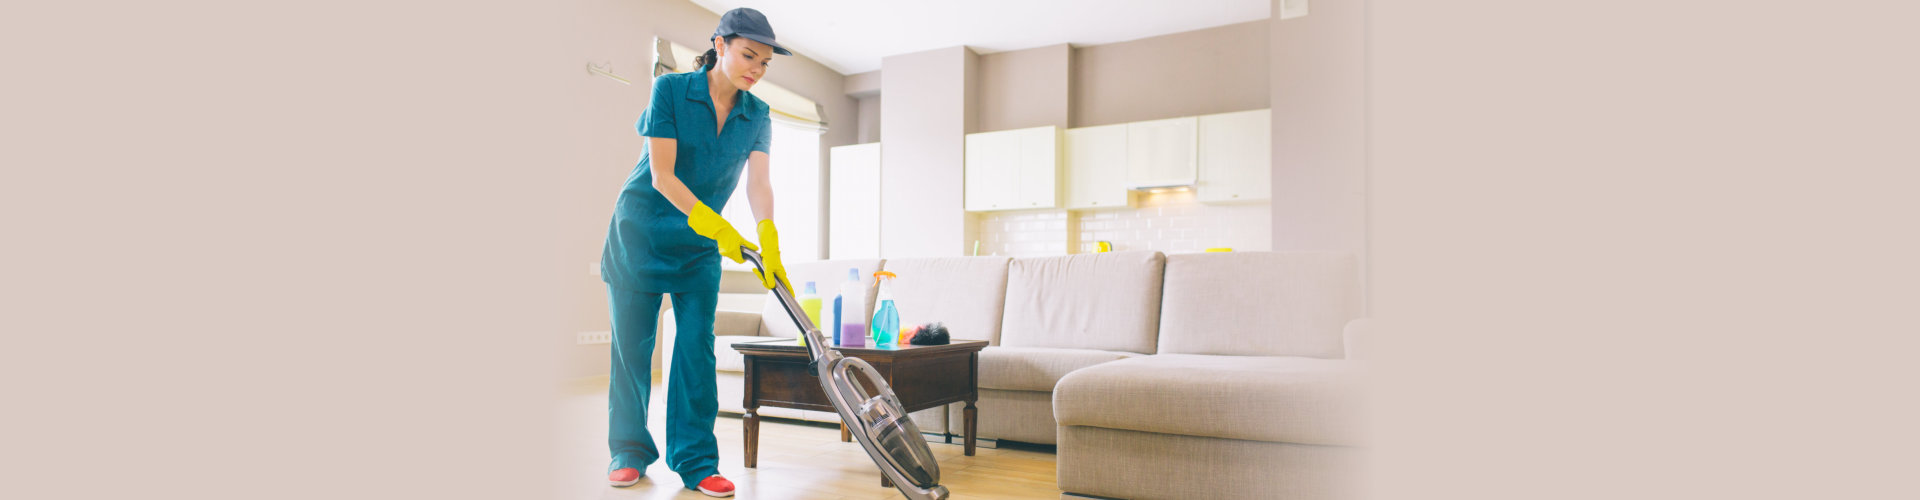 Girl is walking in studio apartment and cleaning floor